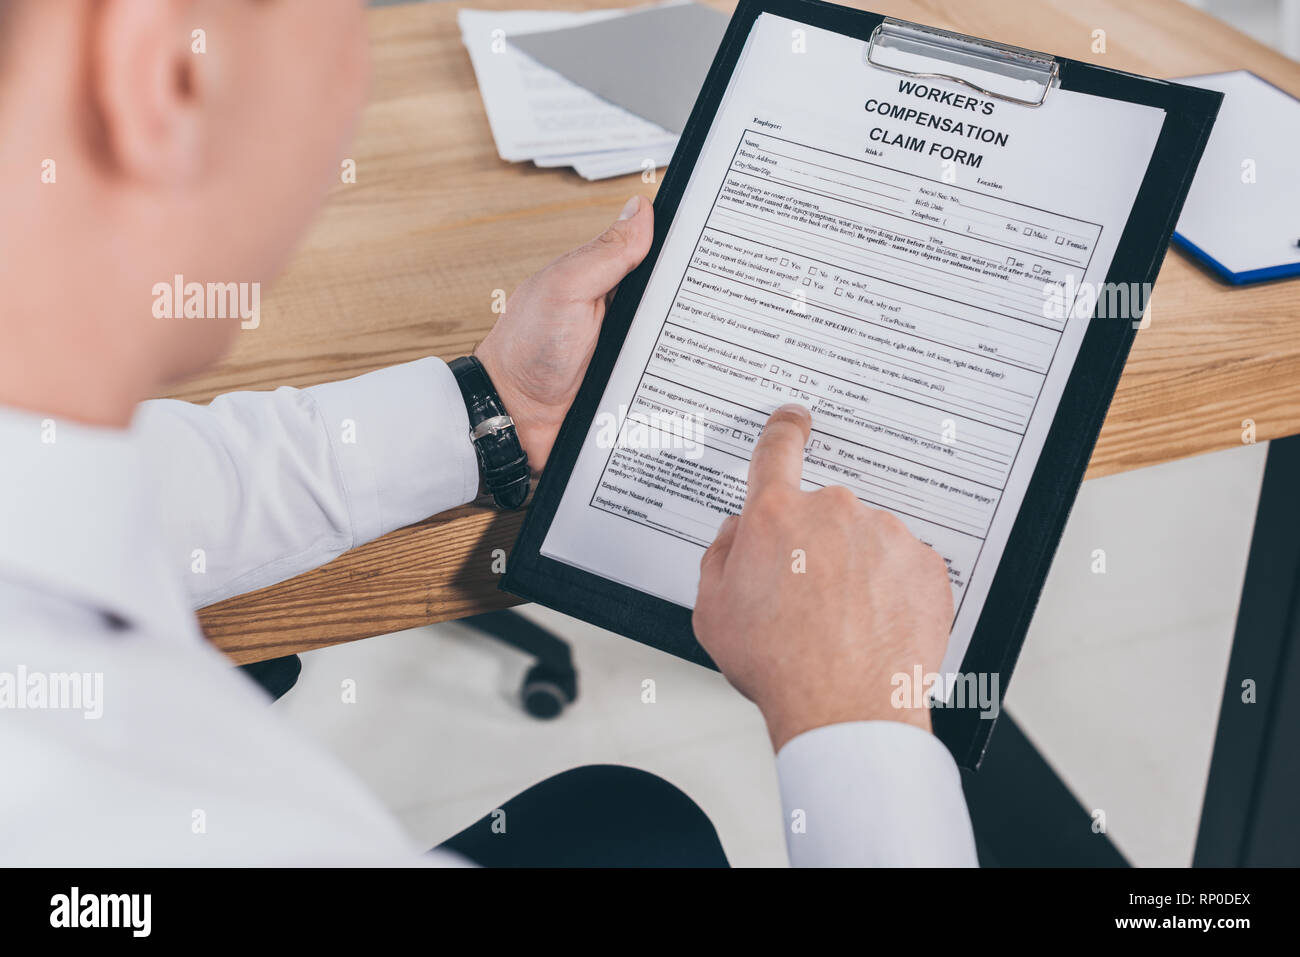 cropped view of businessman reading compensation claim form - Stock Image